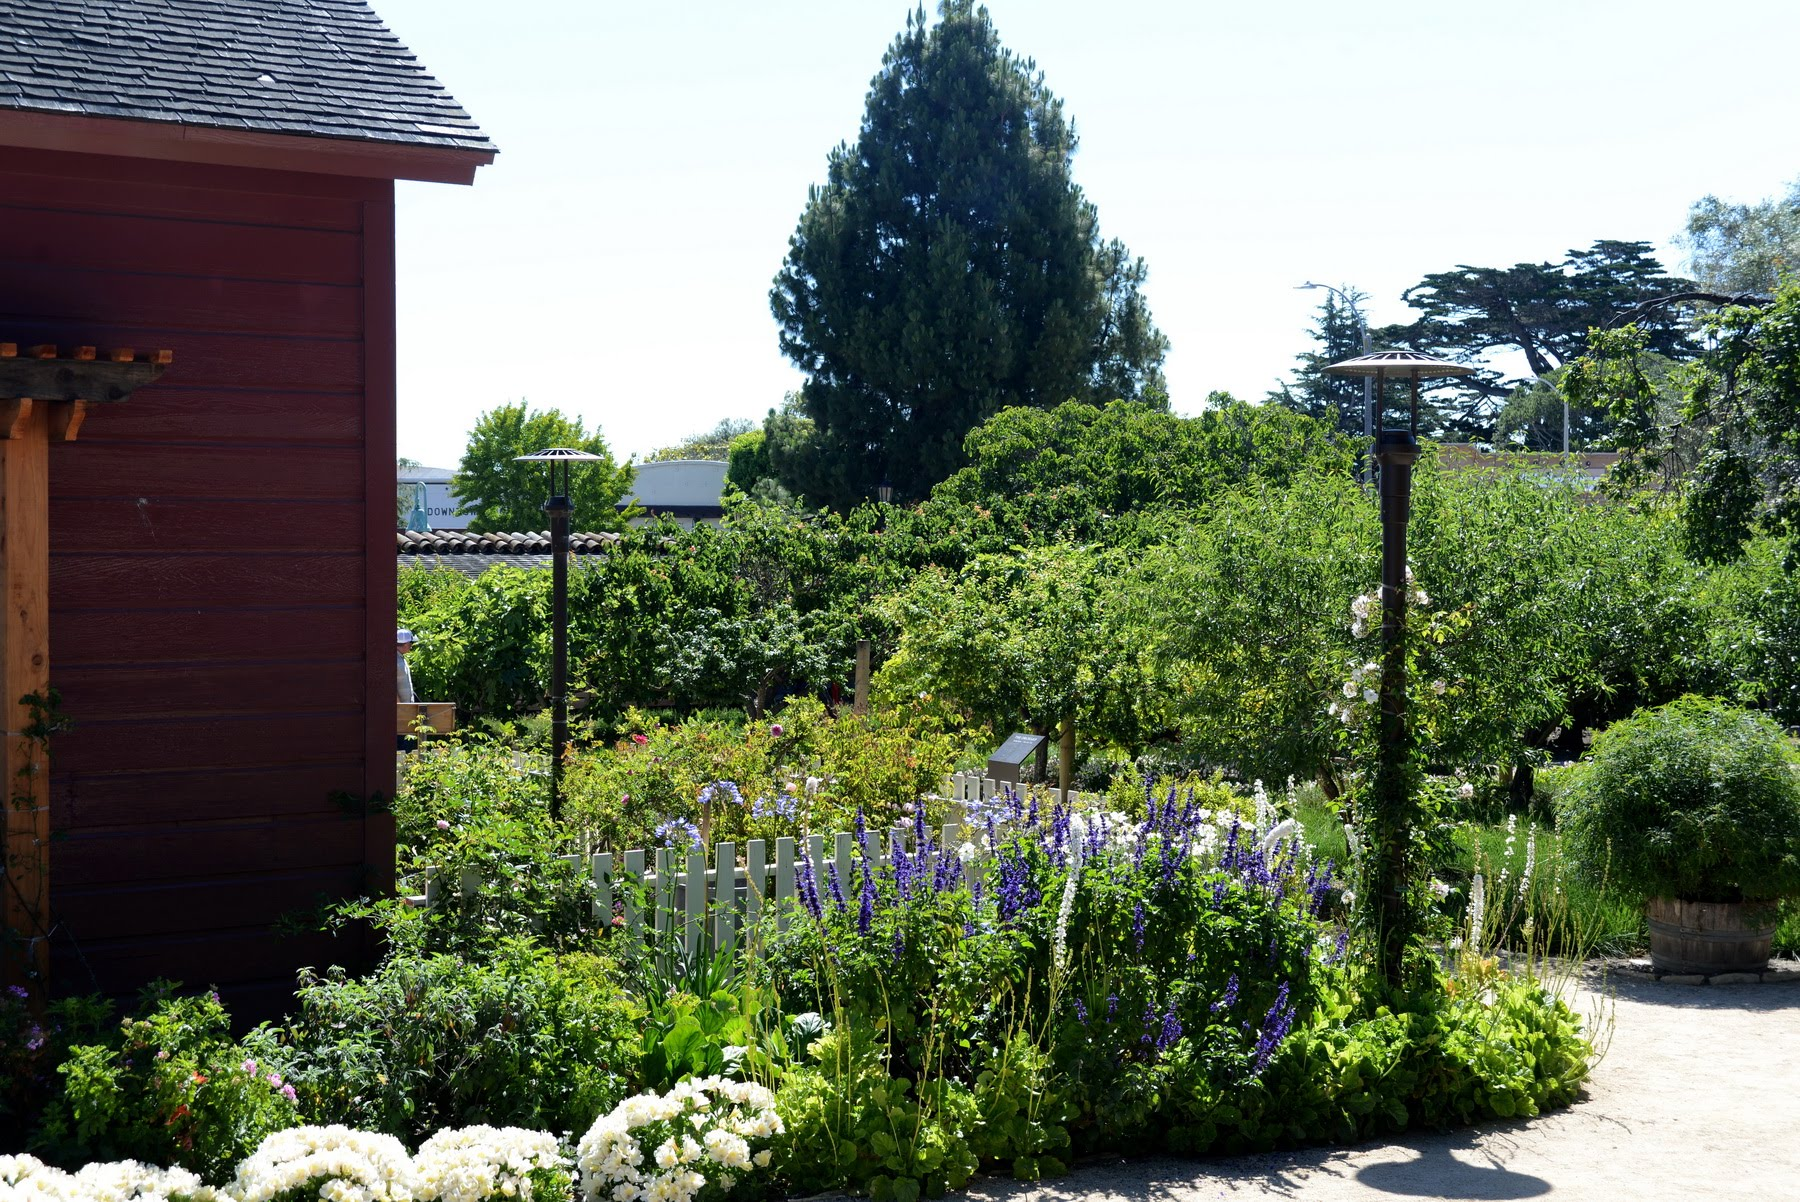 View of Red House Garden and Orchard in distance 2019 © Don Eastman